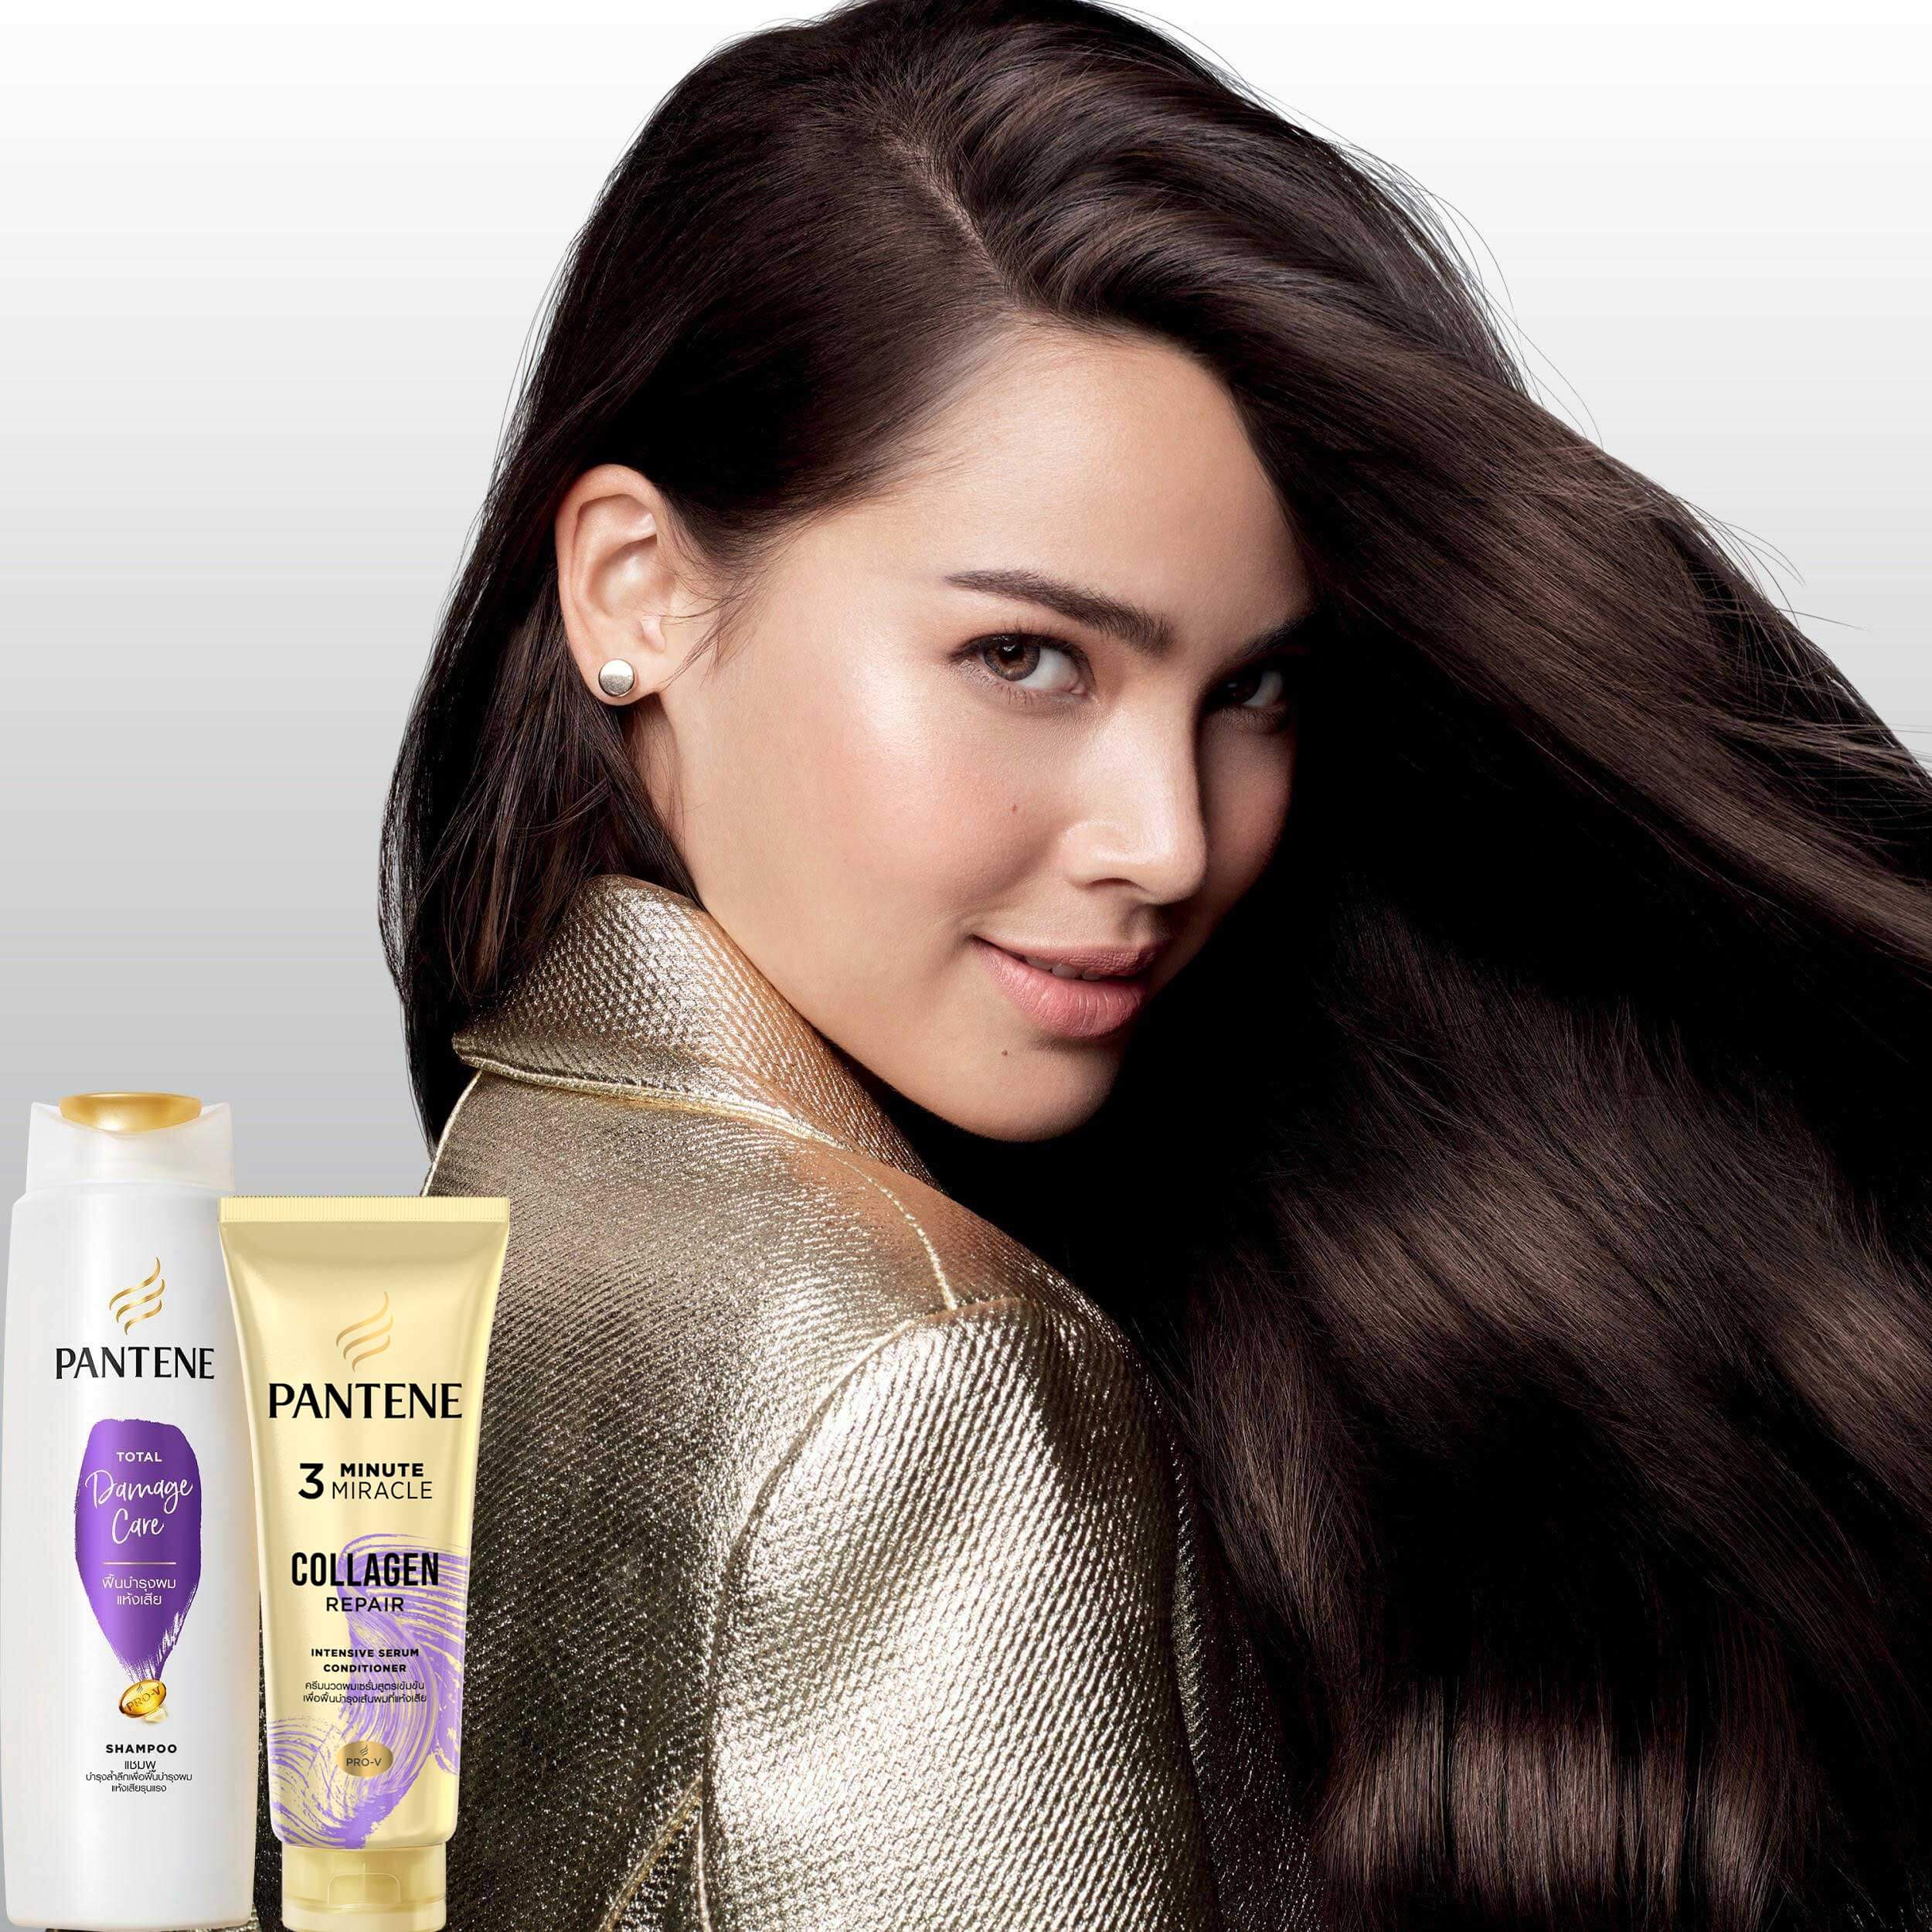 Choosing the right shampoo with Pantene